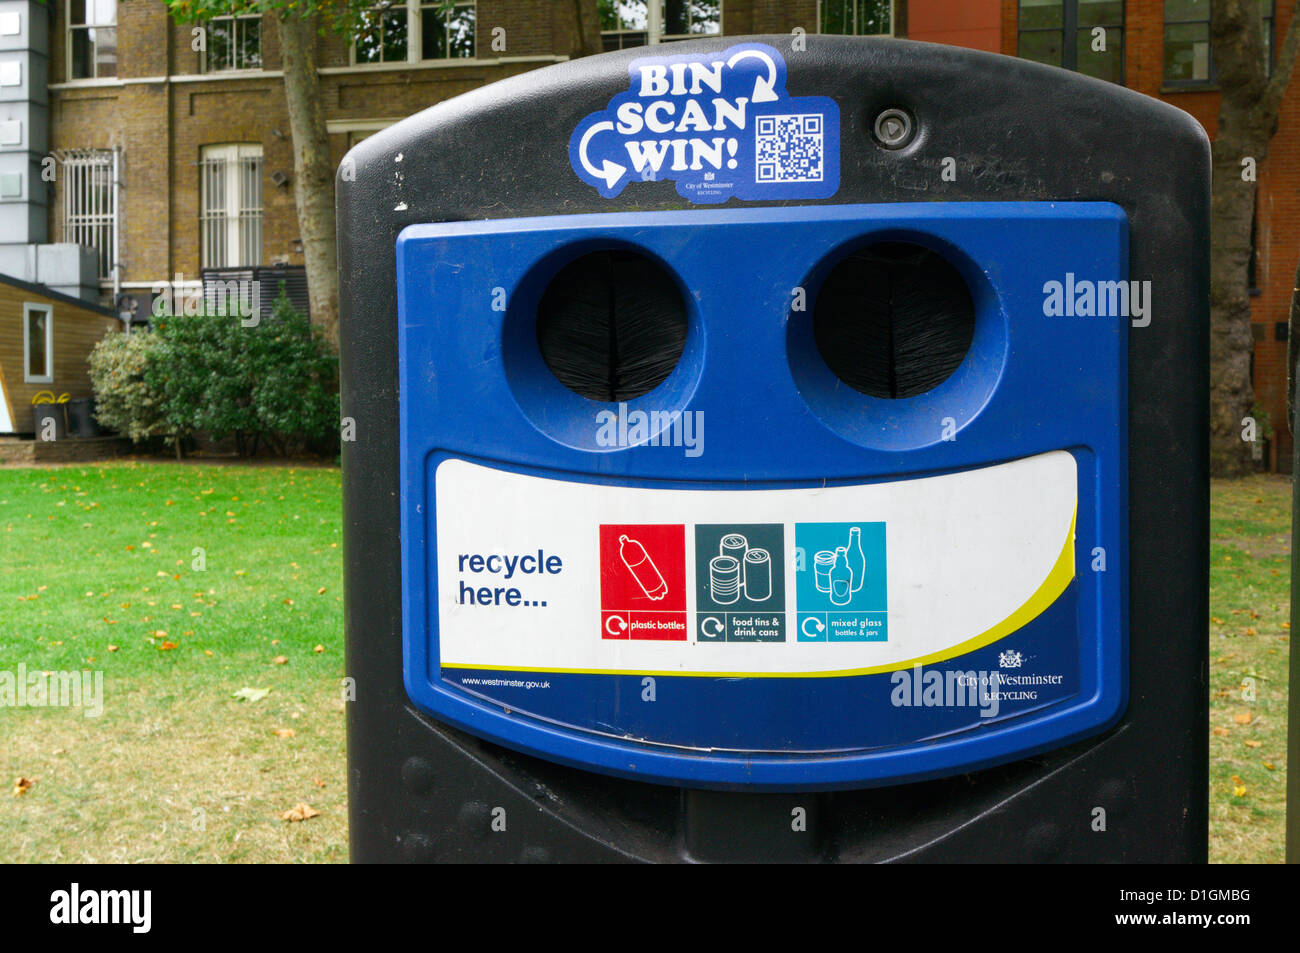 A bottle and can recycling bank with a competition entered by scanning a QR code by mobile 'phone. - Stock Image